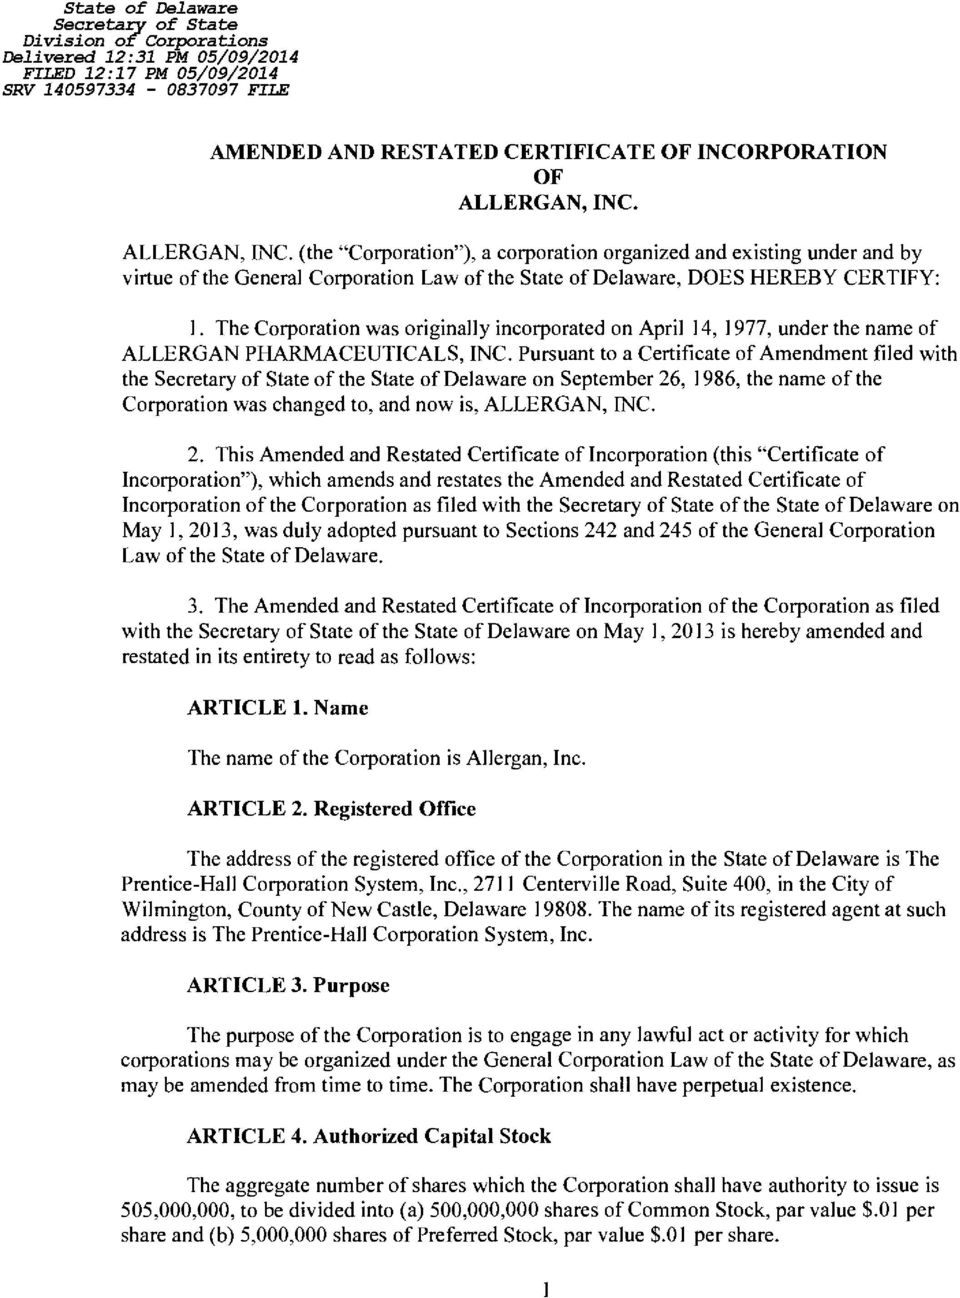 The Corporation was originally incorporated on April 14, 1977, under the name of ALLERGAN PHARMACEUTICALS, INC.